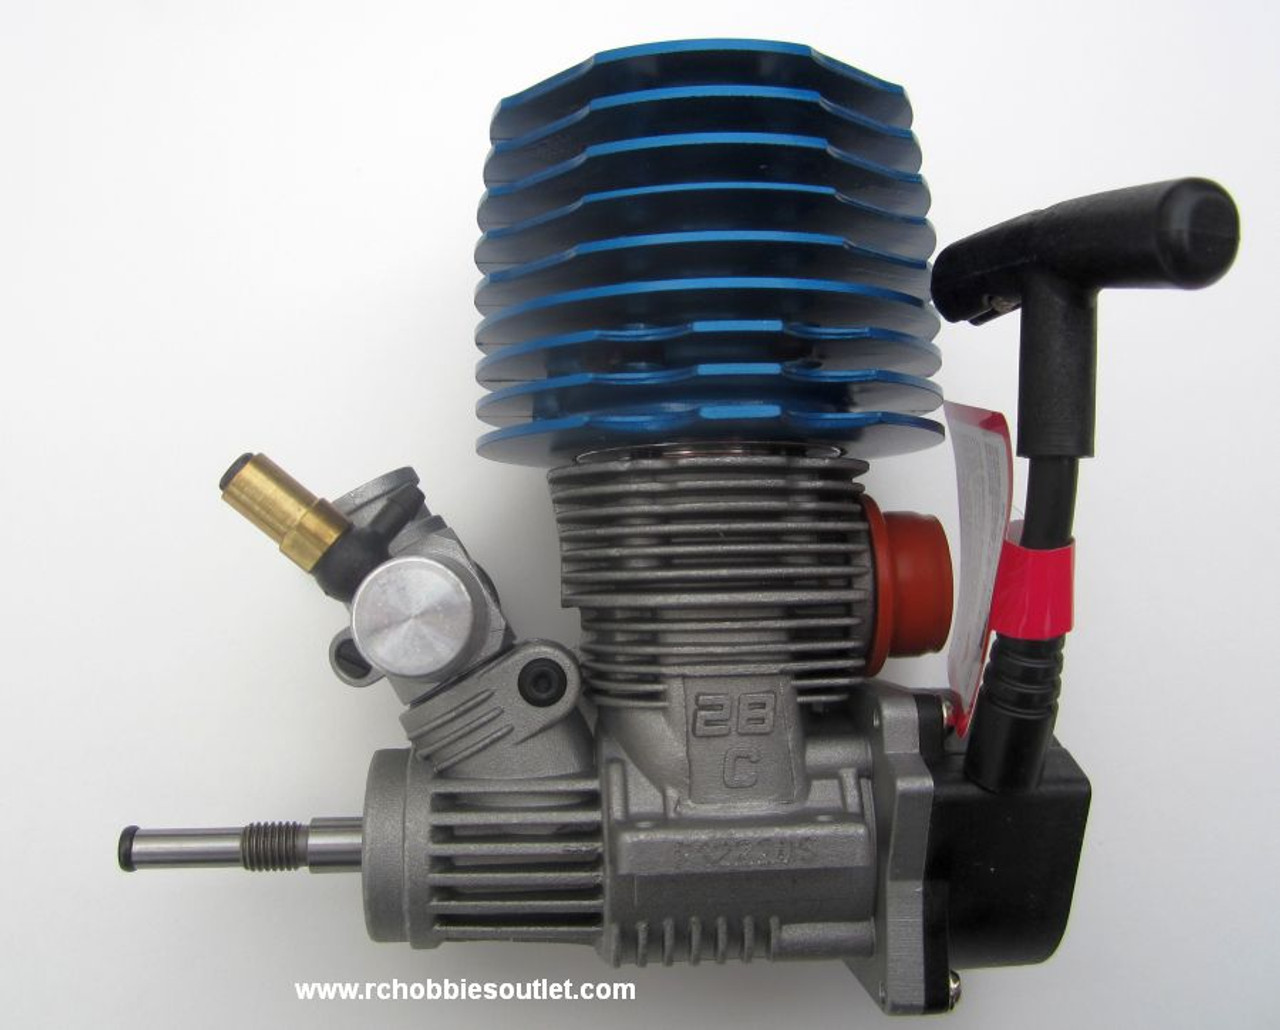 SH 28 Nitro RC Engine 4.57cc for 1/8 Scale with Pull-out Carburetor HSP Redcar